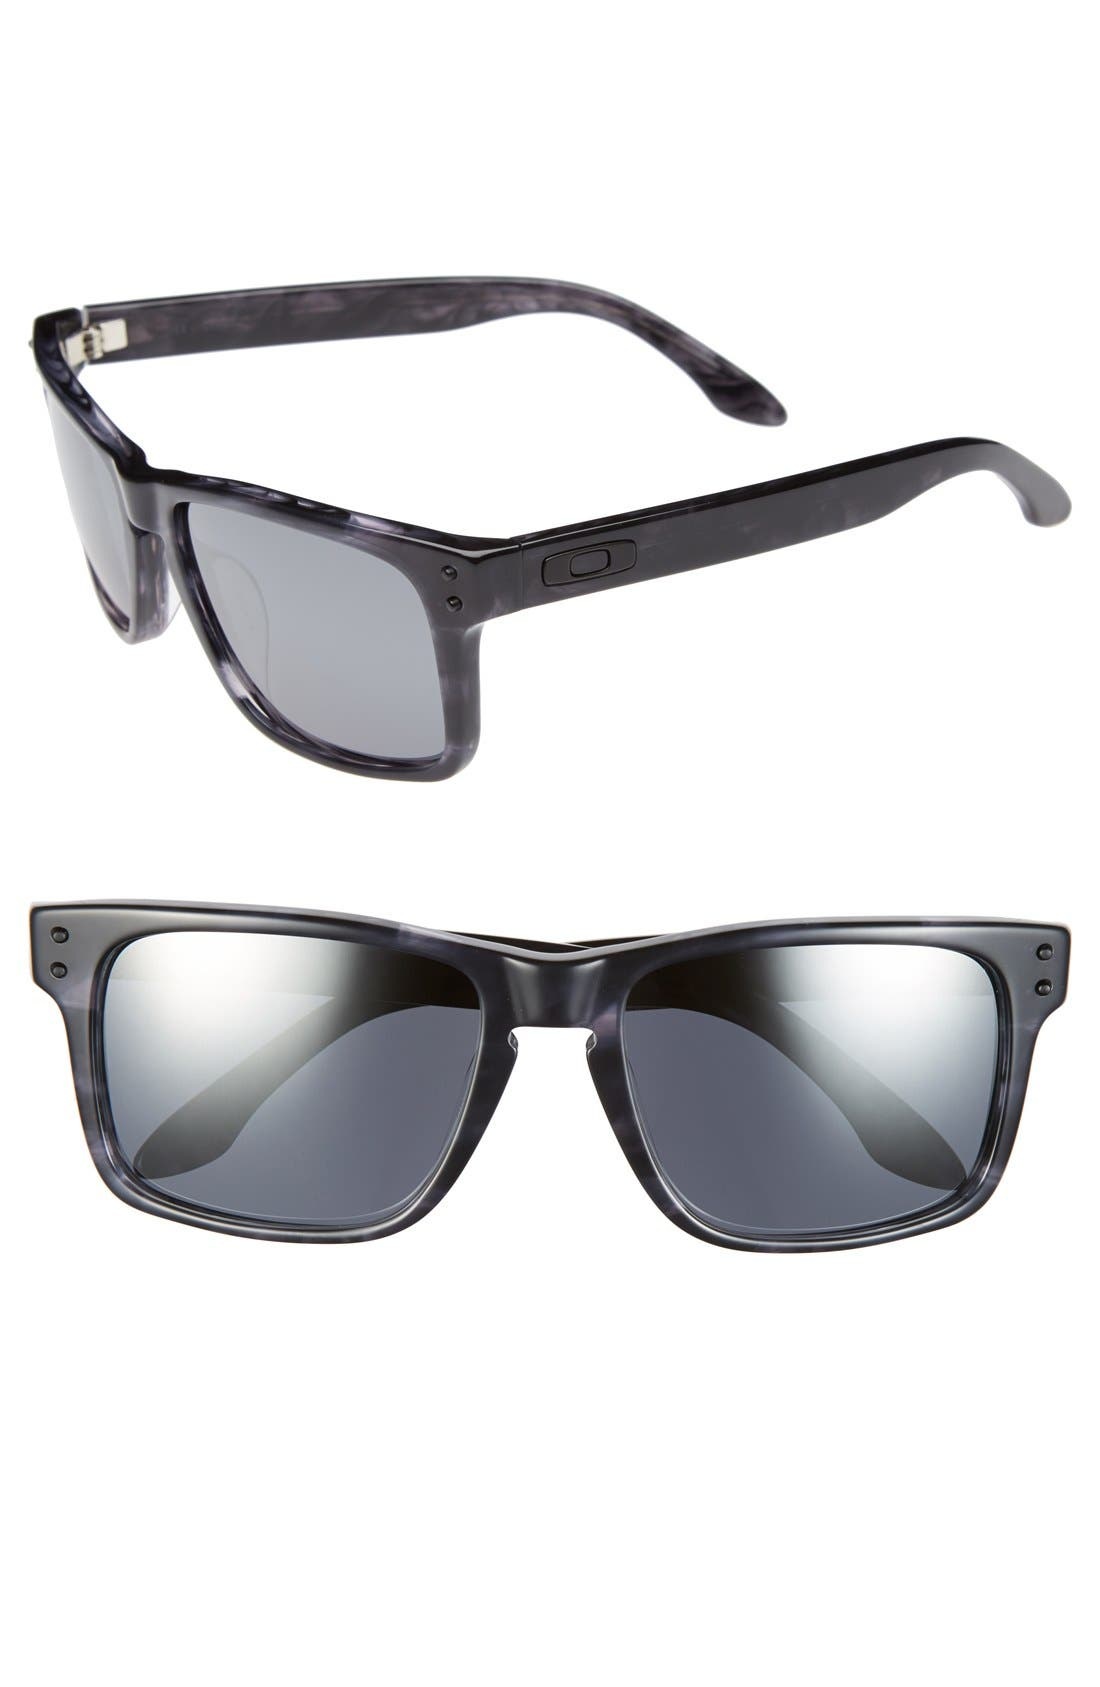 Alternate Image 1 Selected - Oakley 'Holbrook LX' 56mm Sunglasses